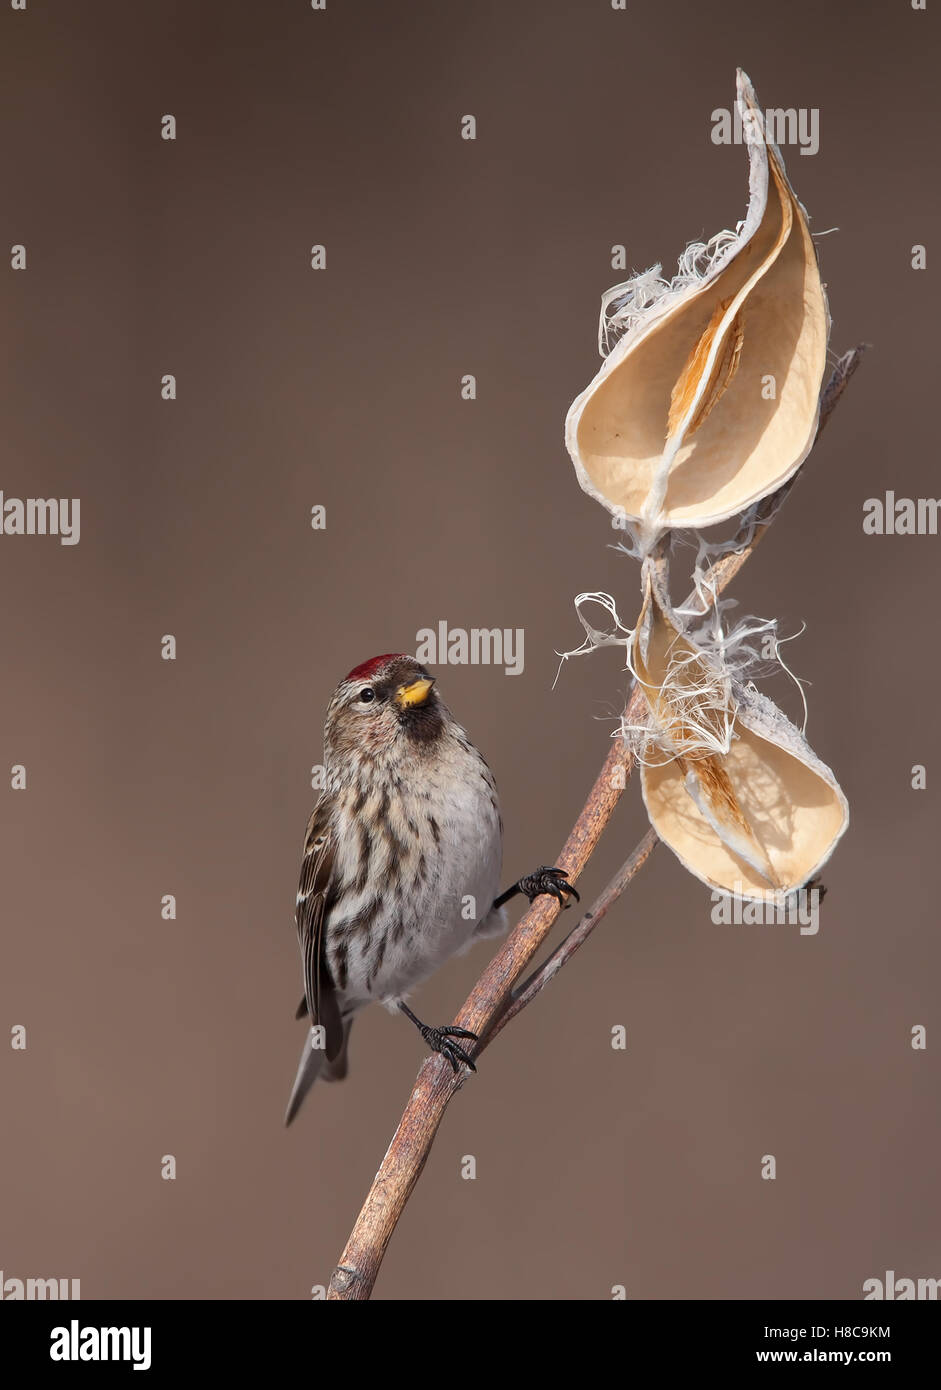 Common Redpoll (Acanthis flammea) perched on milkweed in winter in Canada - Stock Image